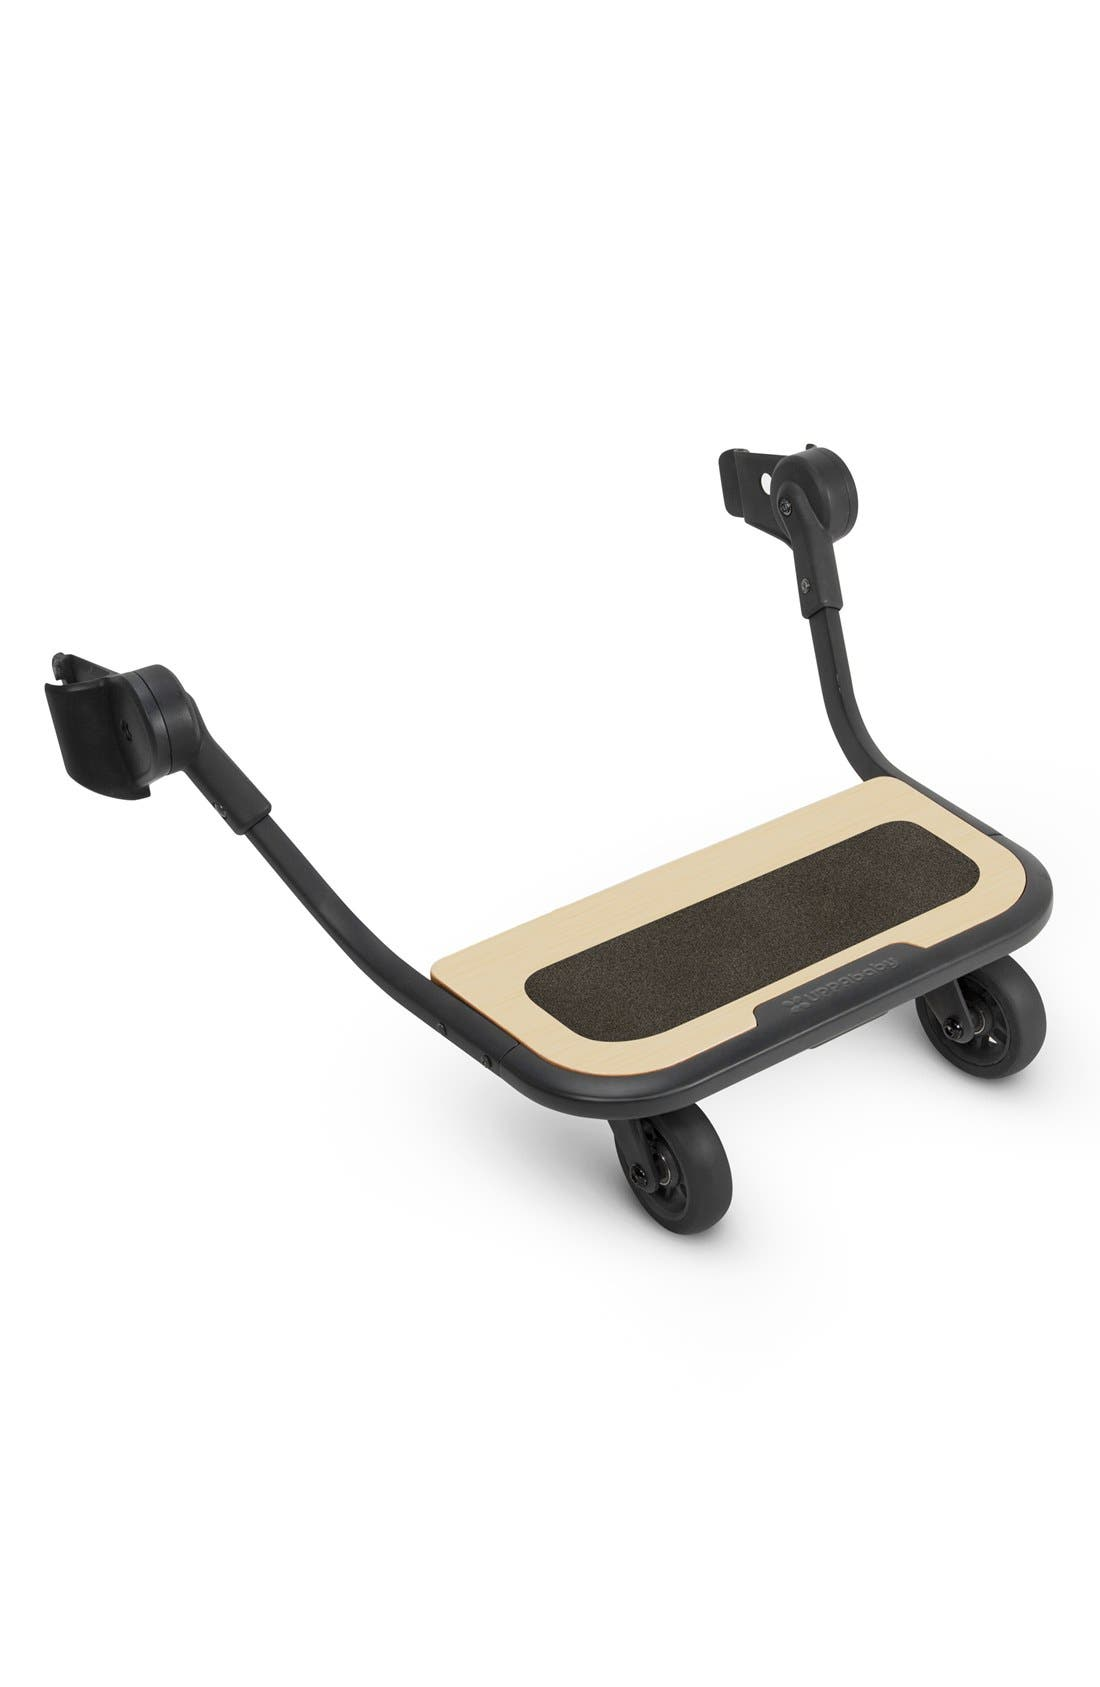 Main Image - UPPAbaby VISTA Stroller PiggyBack Ride-Along Board